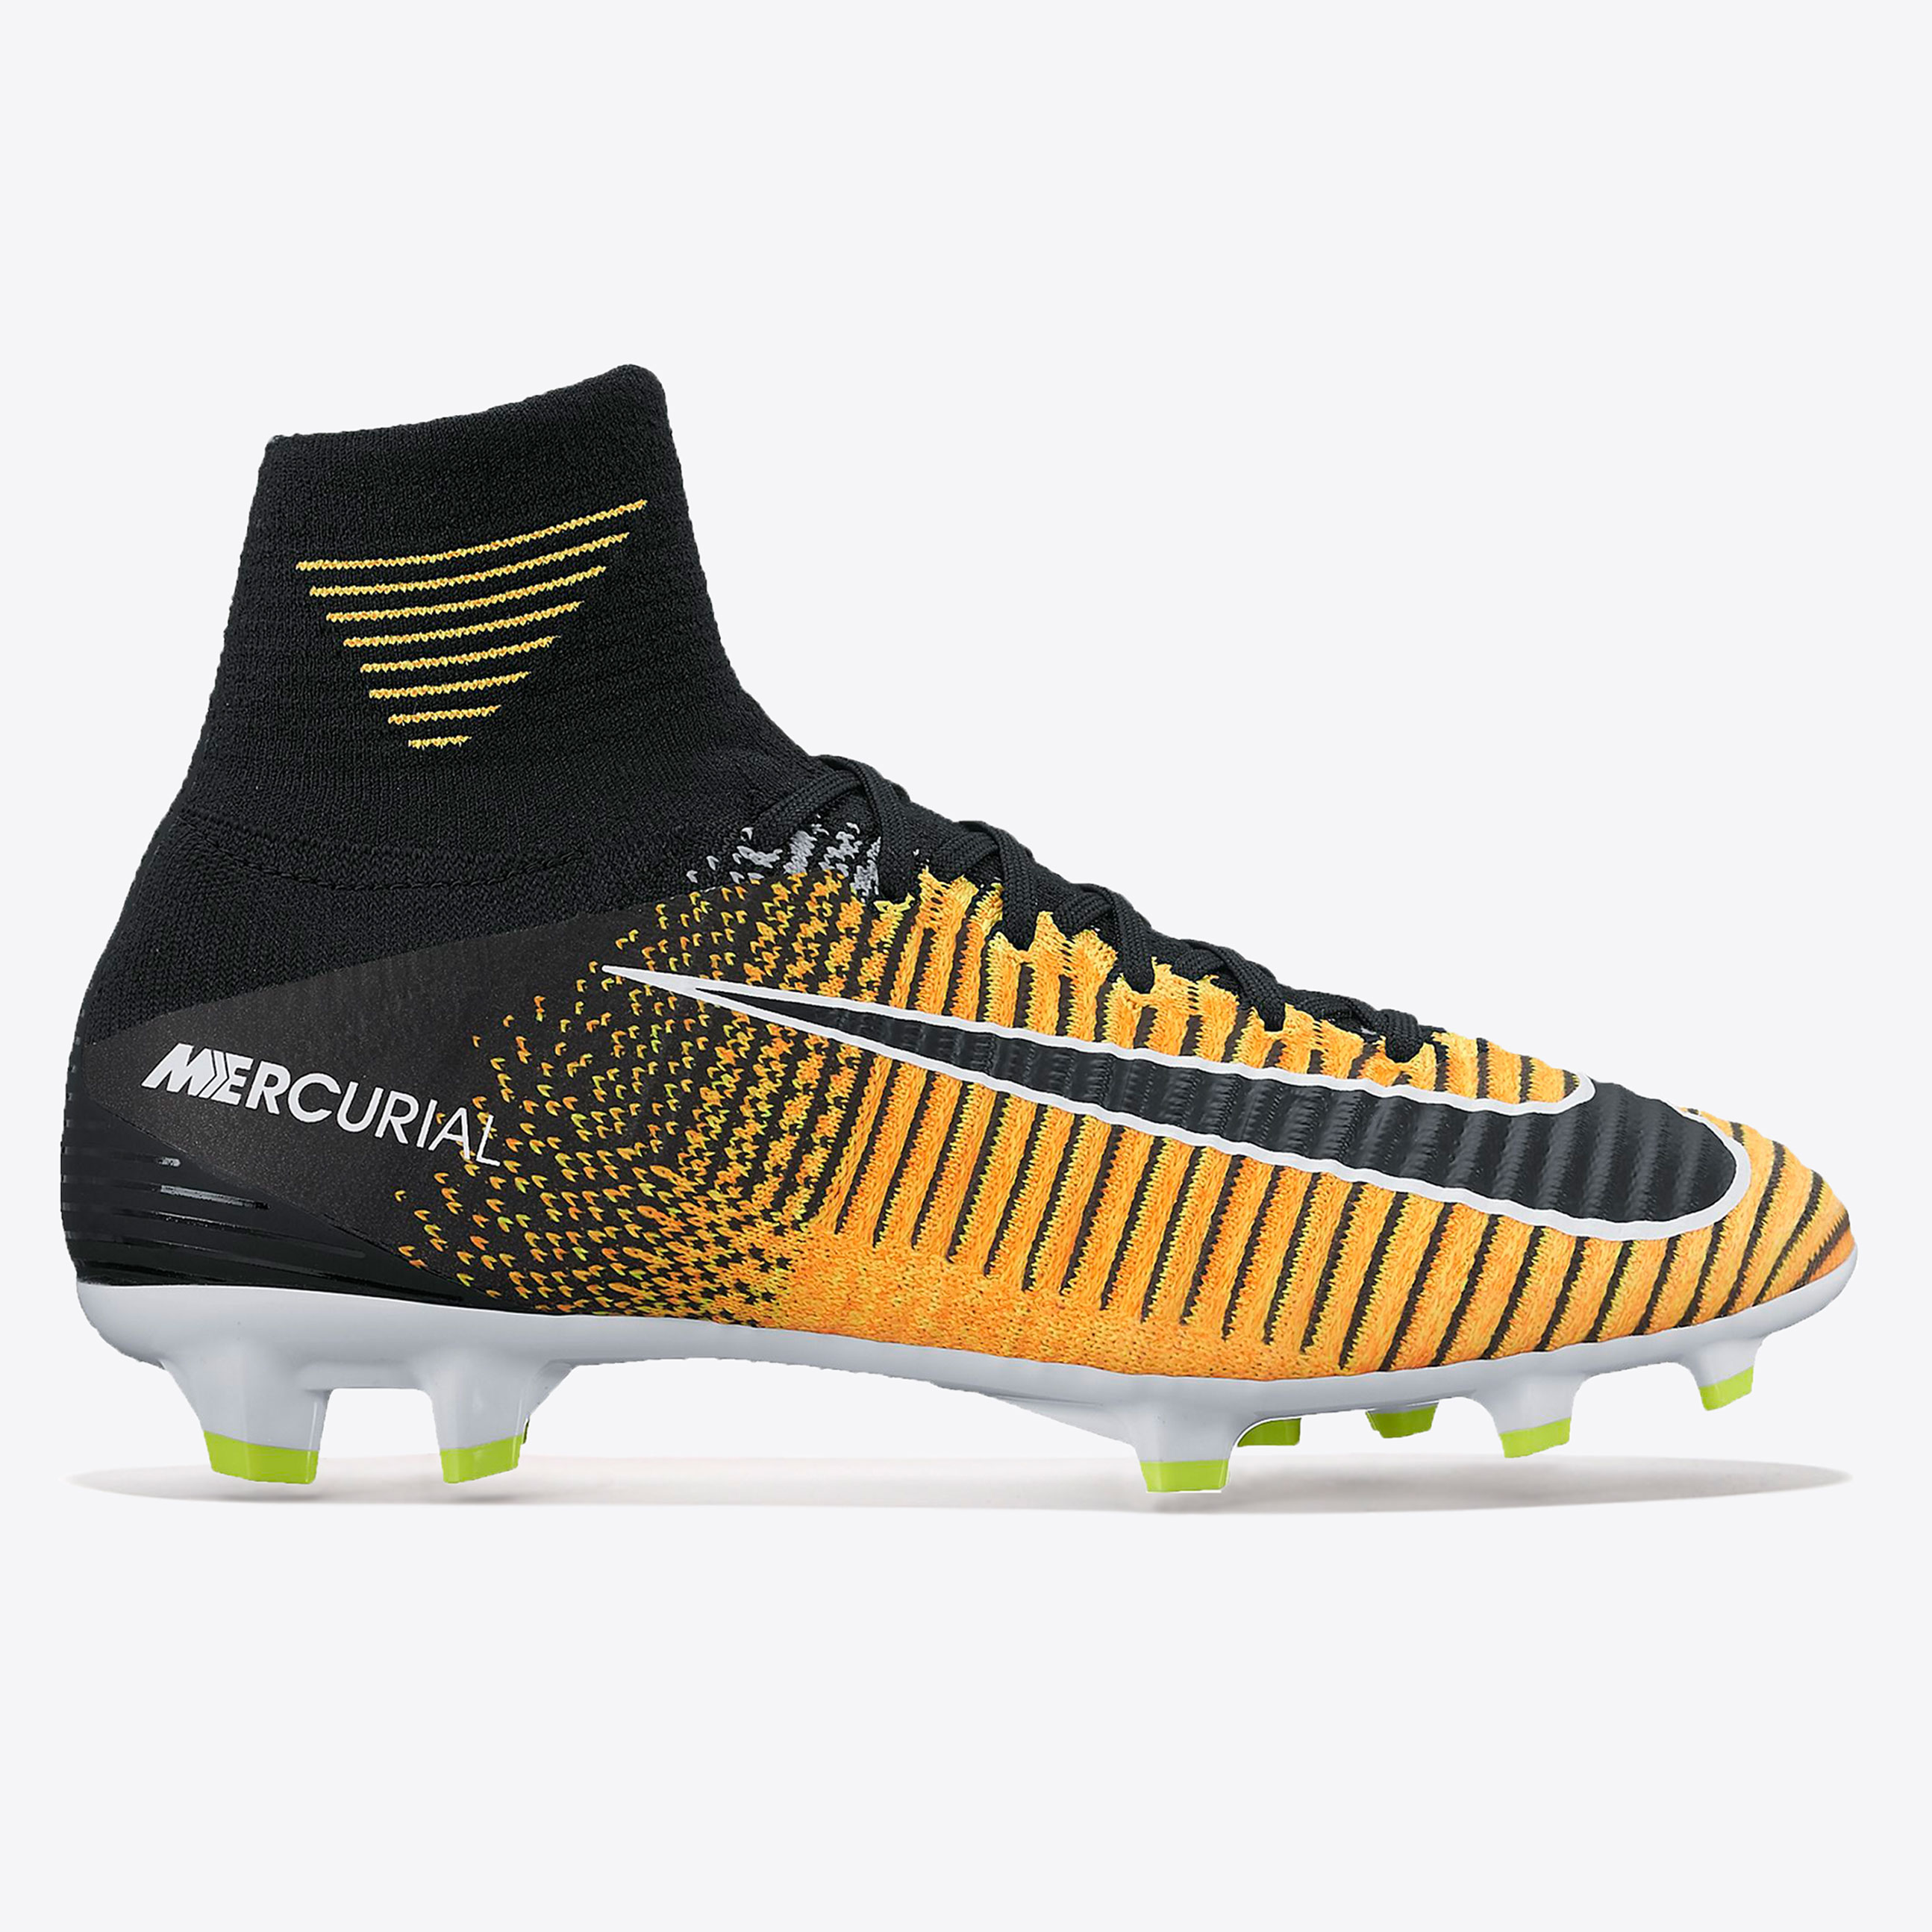 Nike Mercurial Superfly V Dynamic Fit Firm Ground Football Boots - Las